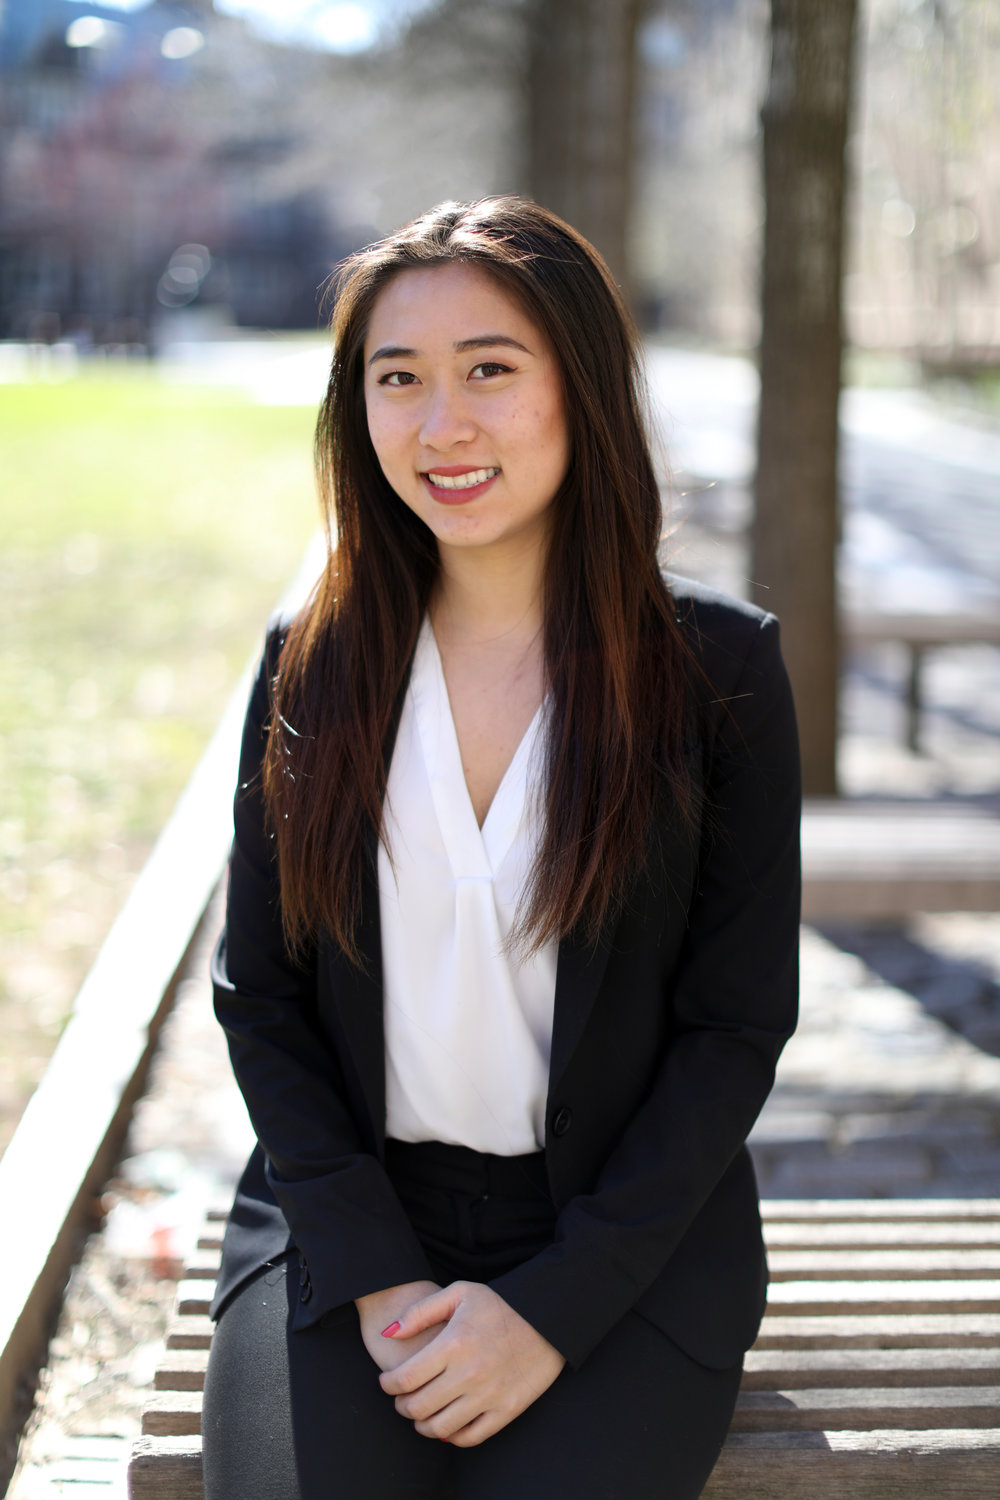 Cathy Ding - Vice President of Corporate RelationsCathy Ding (Class of 2020) is from Los Angeles, CA and plans to concentrate in Management, Finance, and Marketing with a minor in French. After working on the Annual Dinner Committee last fall, she is extremely excited to be continuing her involvement as the VP of Corporate Relations. Cathy also serves as the VP of Advisors for the Wharton Undergraduate Consulting Club, is involved in MUSE as a case team member and is a member of the Delta Sigma Pi Business Fraternity. In her free time she enjoys running, figure skating, fashion design and photography. Feel free to reach out to her at cading@wharton.upenn.edu.